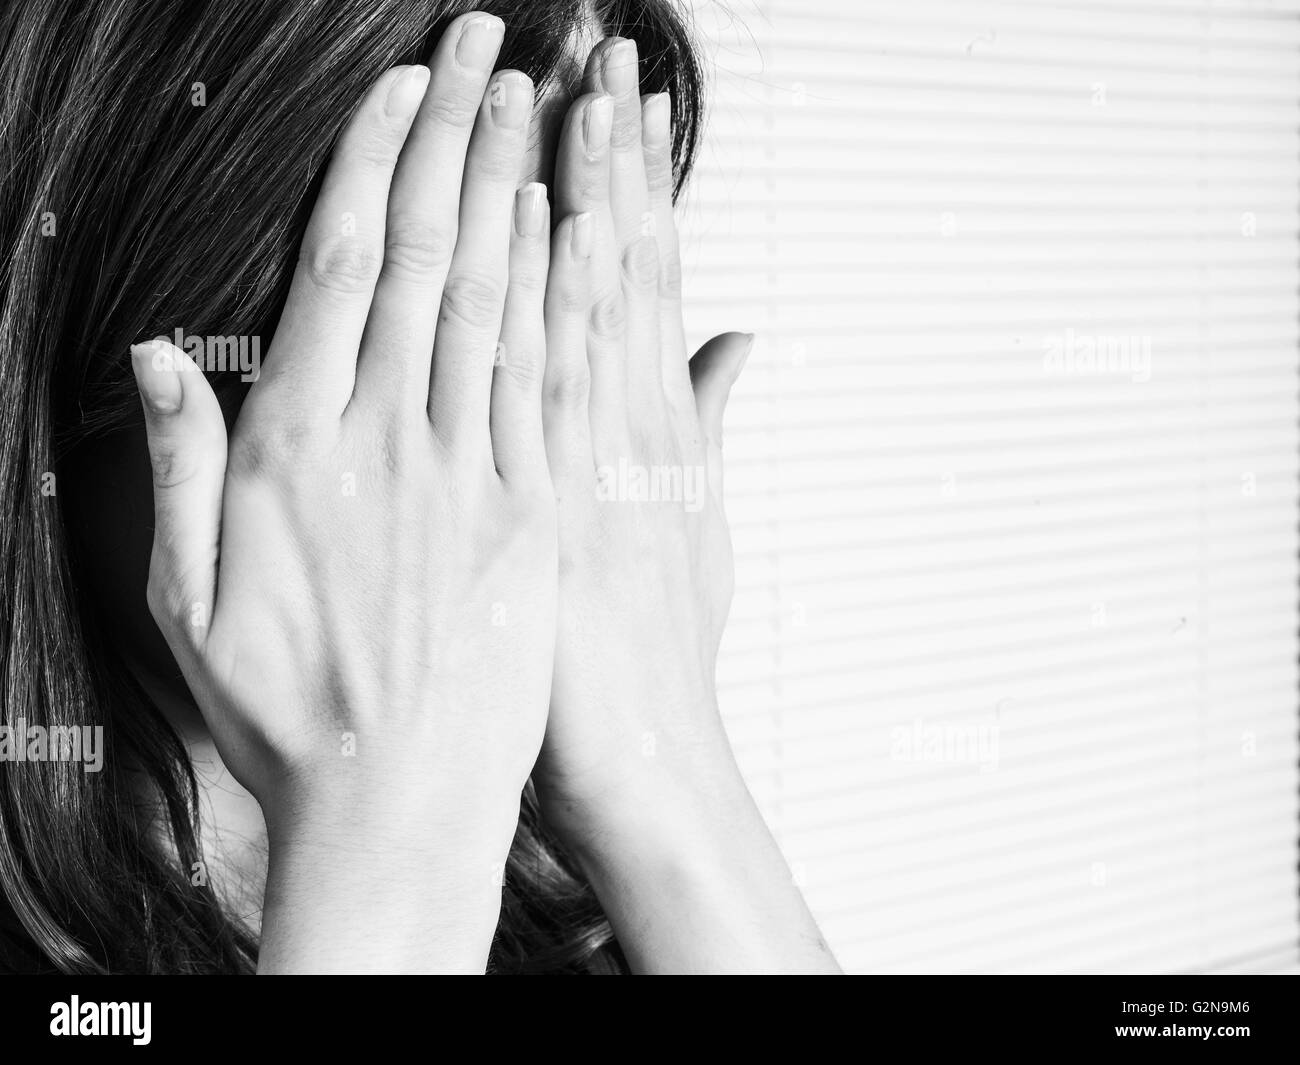 Black and White Portrait of a Young Woman Covering Her Face in Shame or Embarrassment - Stock Image